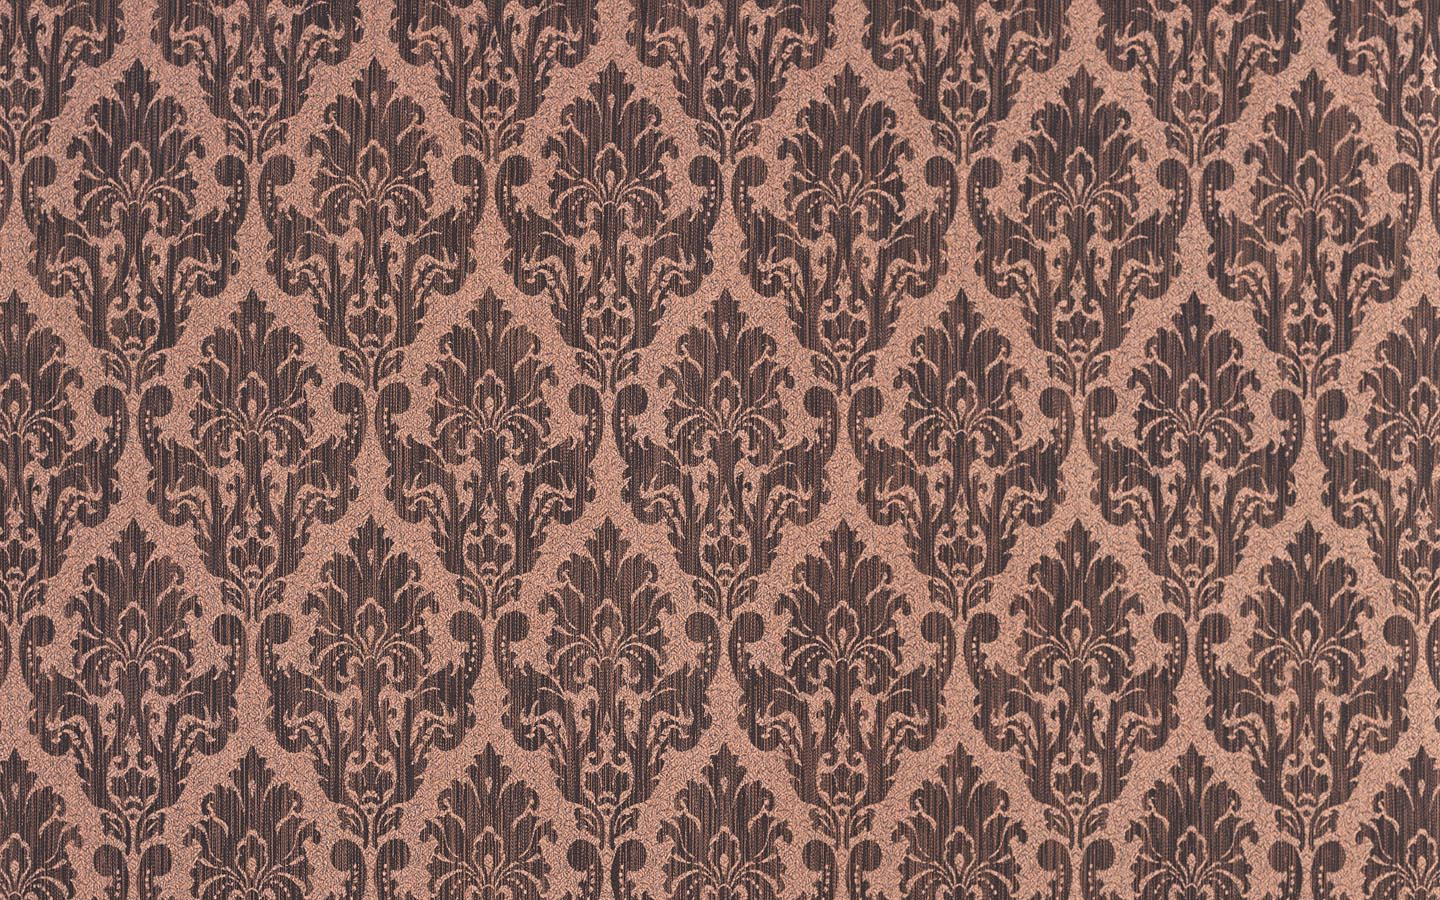 Fabric texture 15134